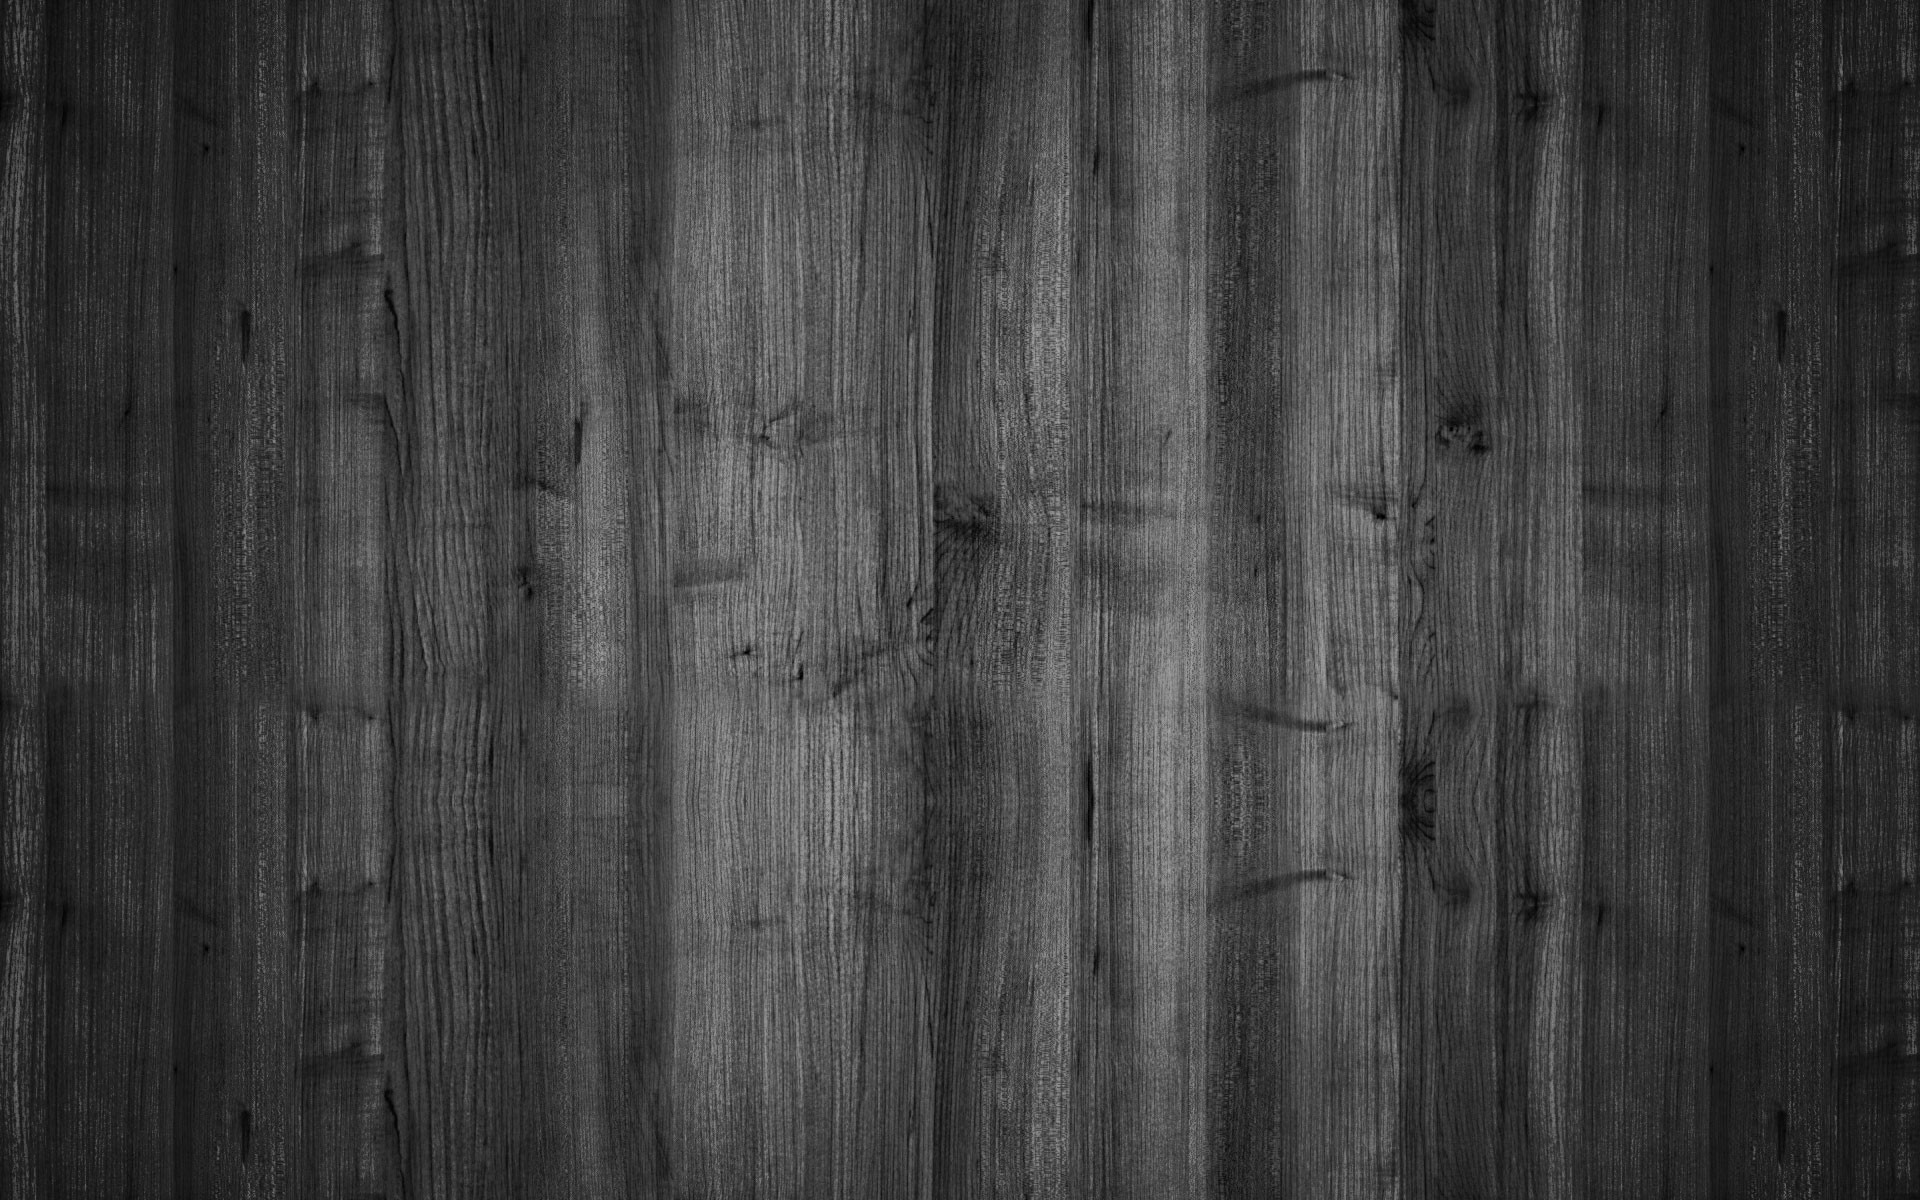 Weathered Wood Plank Wallpaper 25 Images